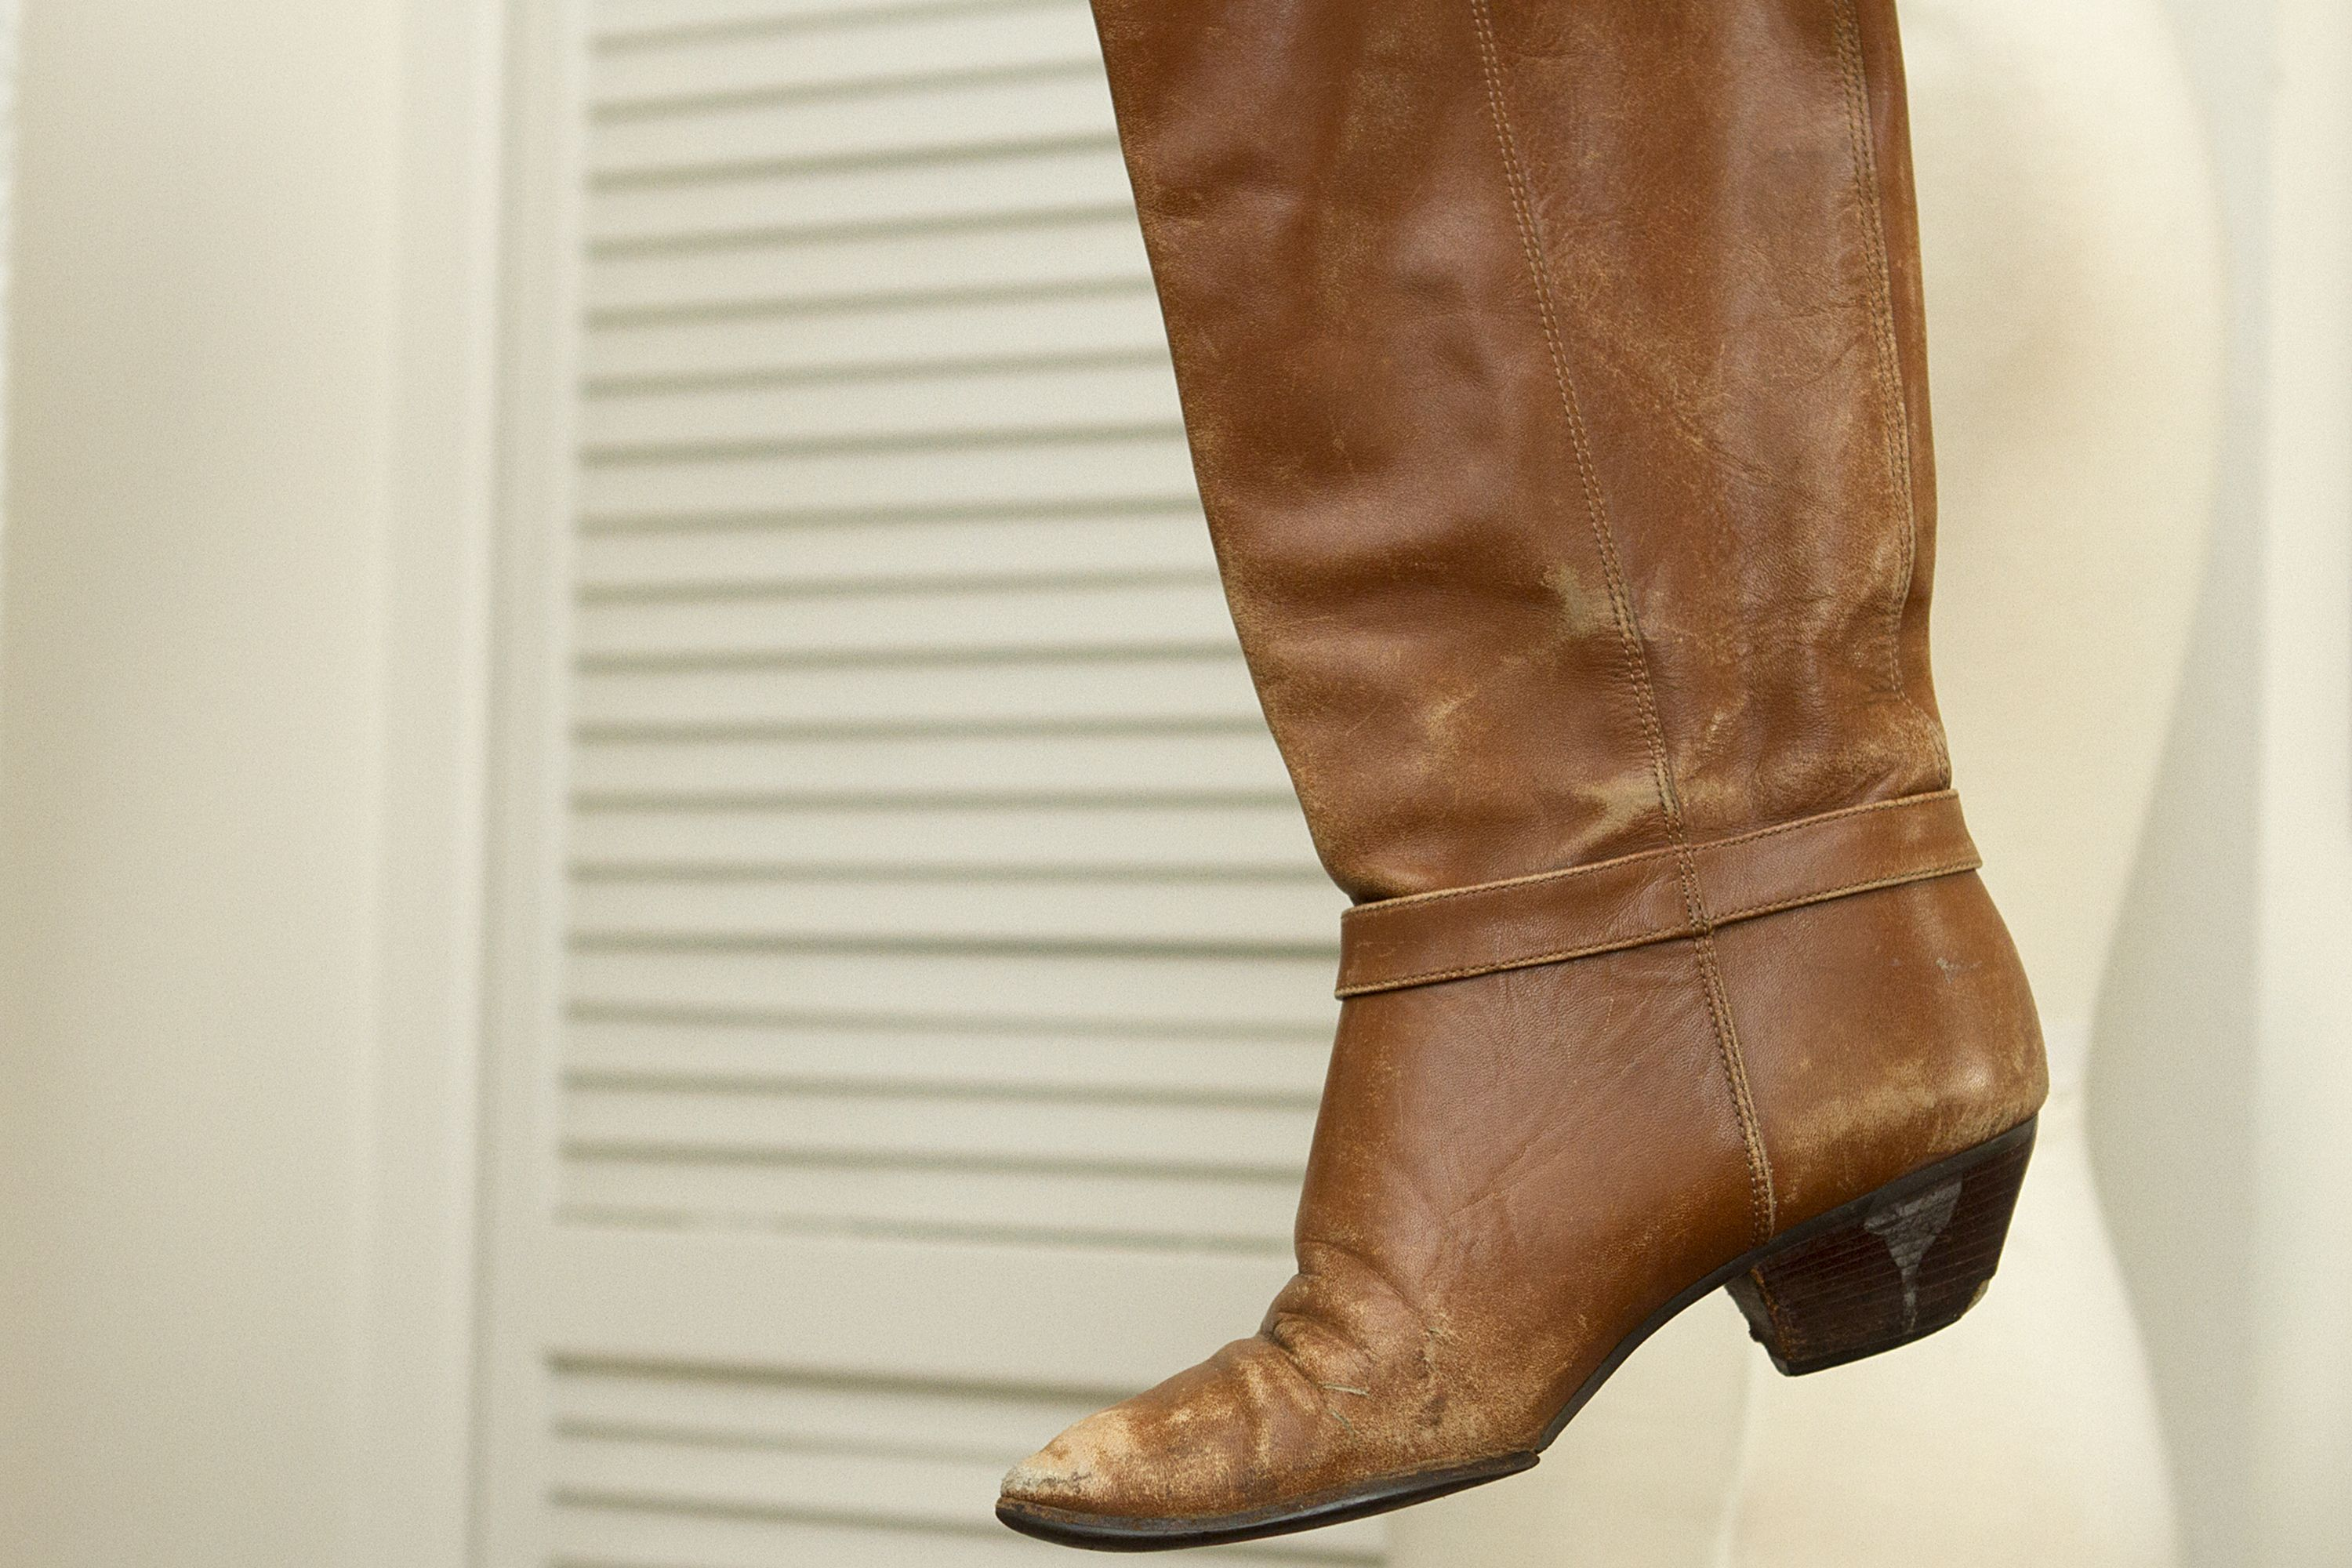 Best way to stretch leather boots